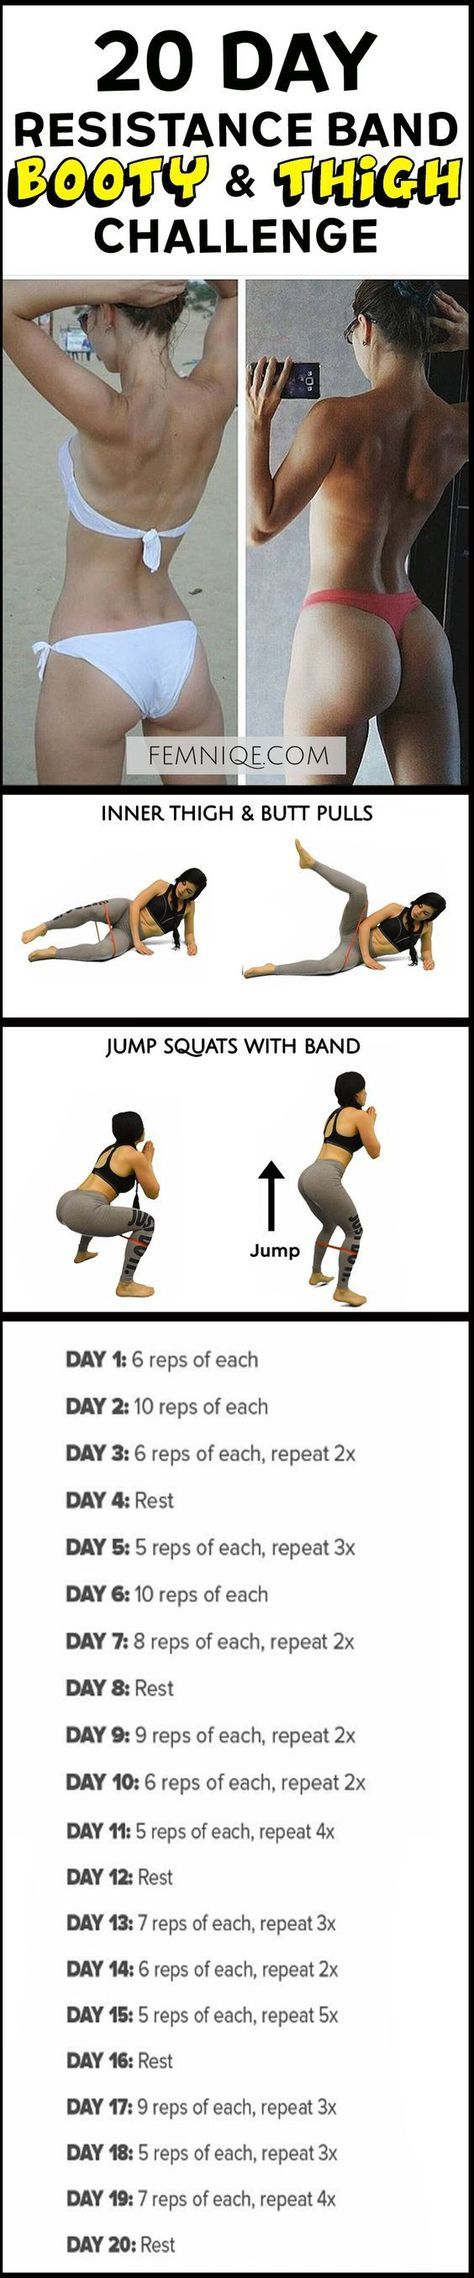 How To Get A Bigger Butt Workout Using Resistance Bands -Bigger Butt Workout at Home For Women - This uniqe and intense routine is one of the best exercise for butt and thighs. After a week you will start to see noticeable changes! (How To Get A Bigger Bu http://amzn.to/2s1FWTh